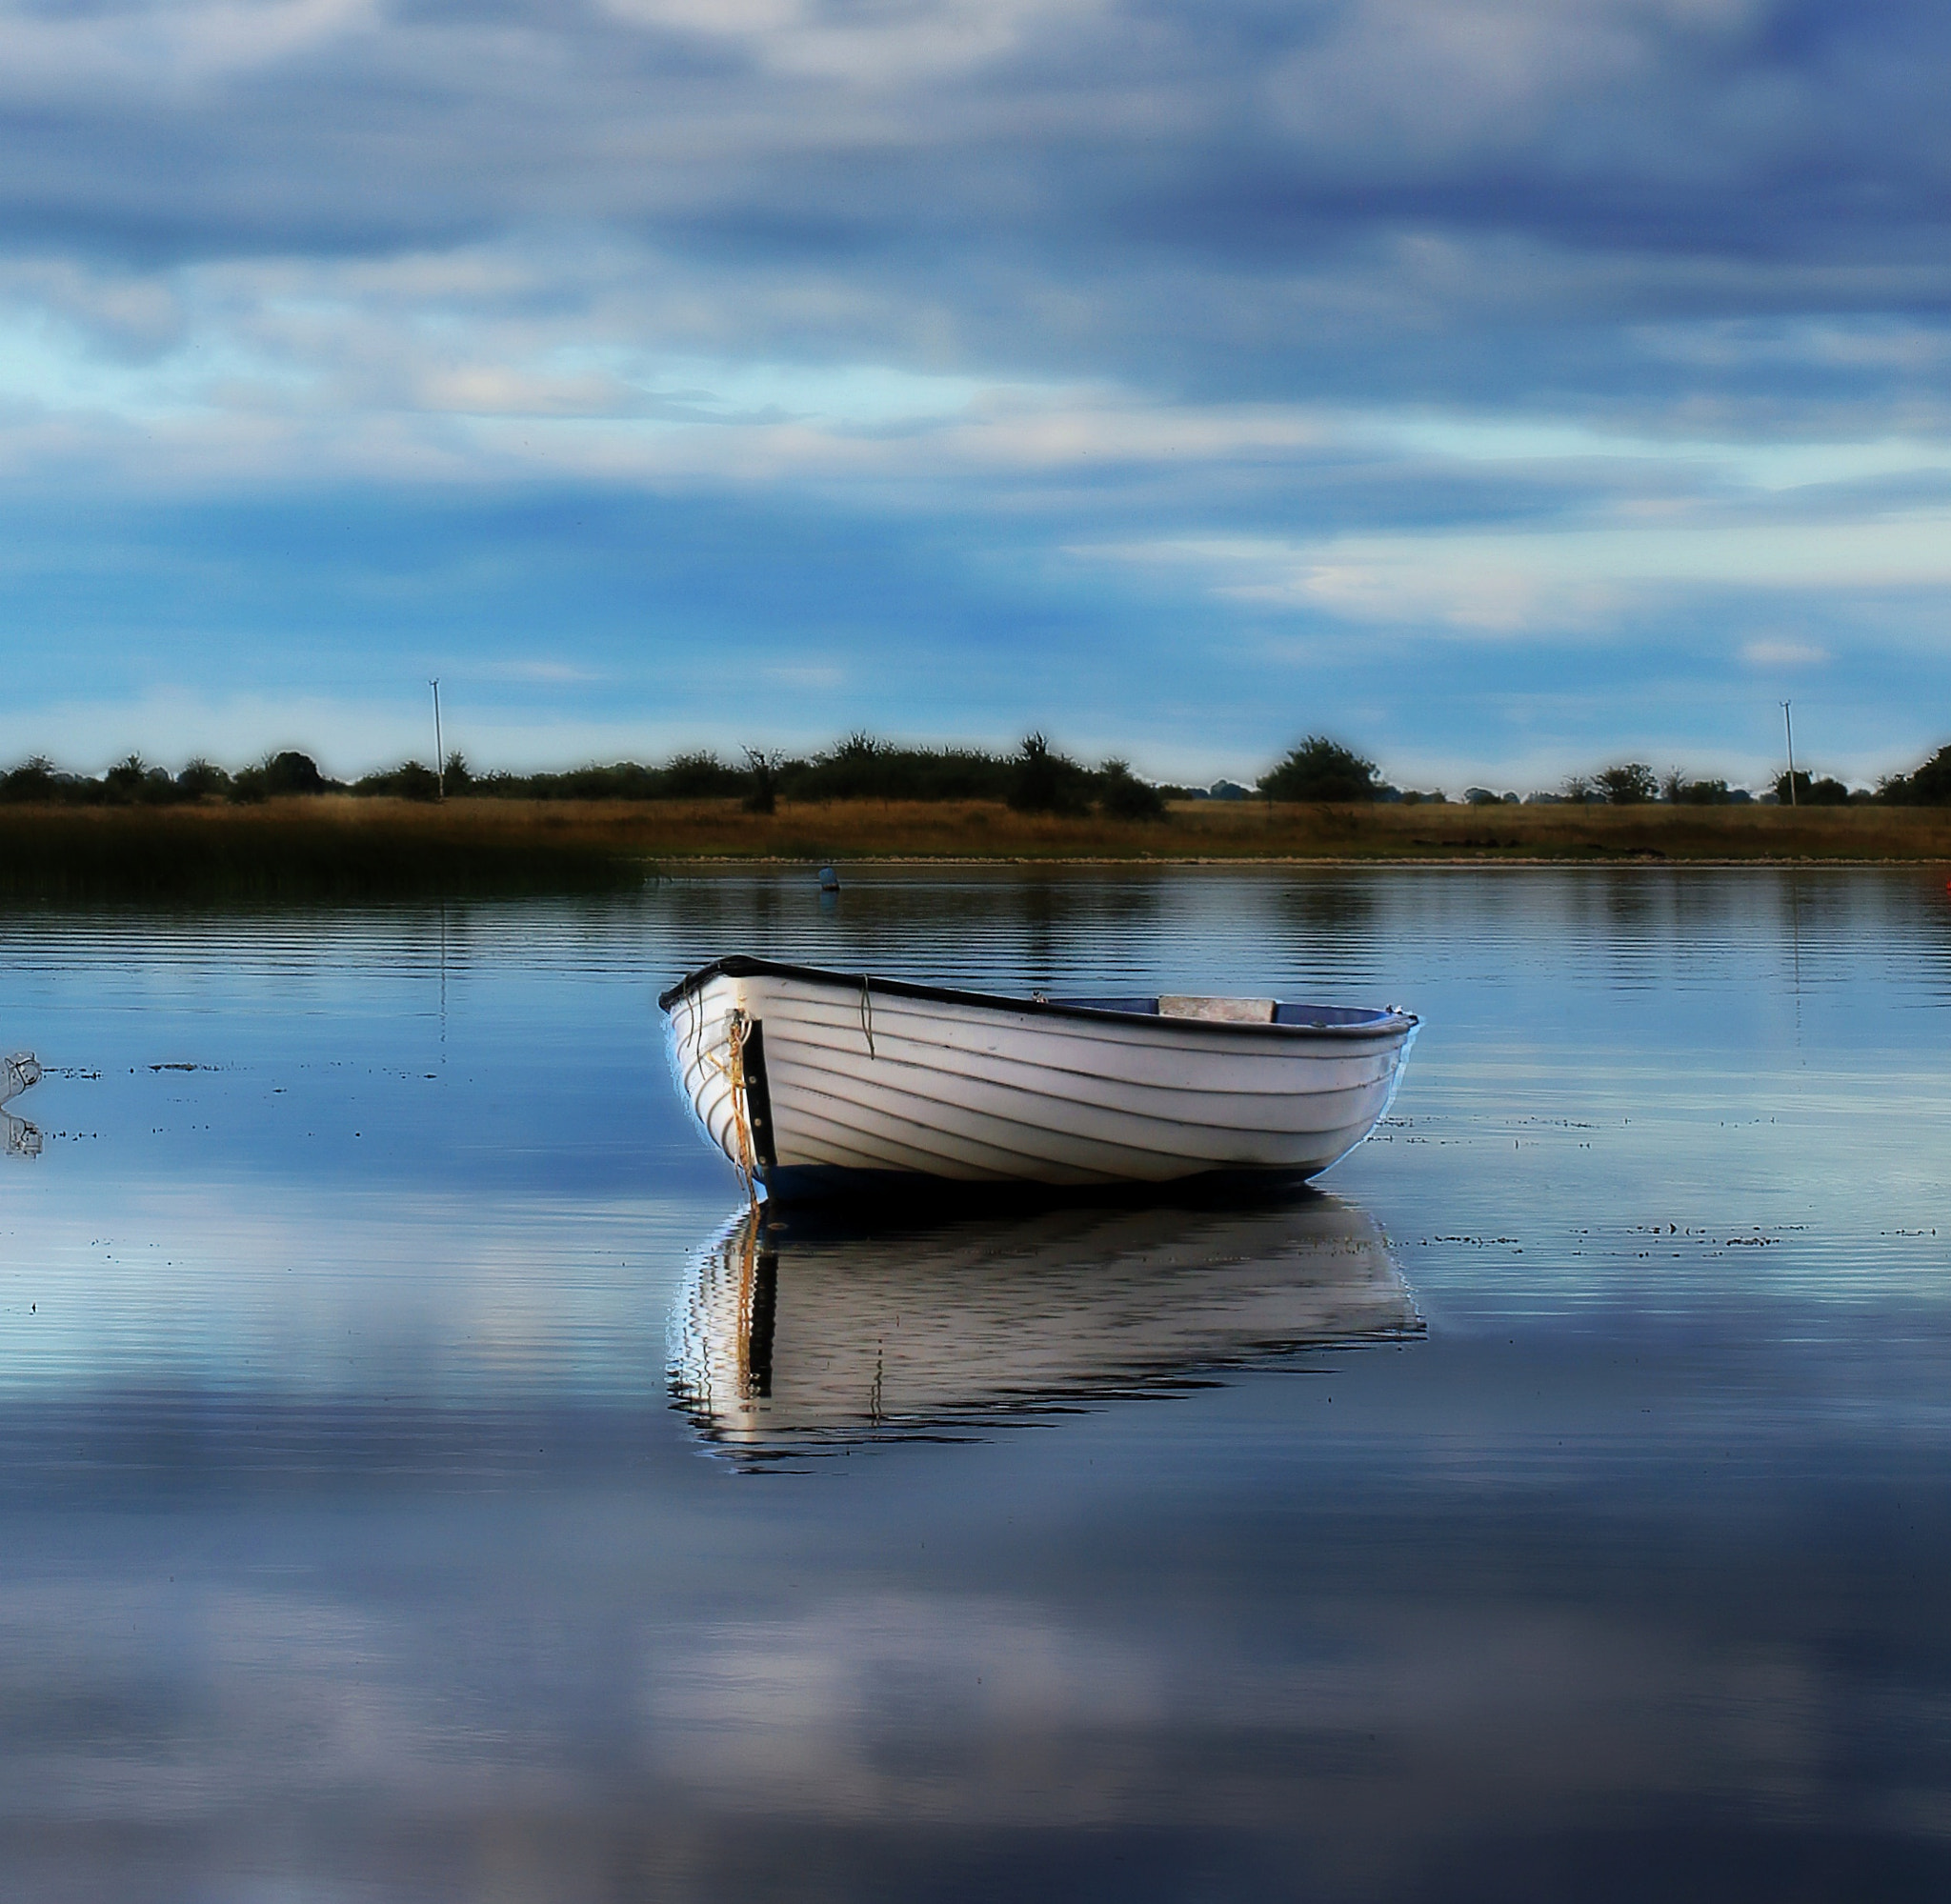 Photograph On calm waters by Anne Costello on 500px